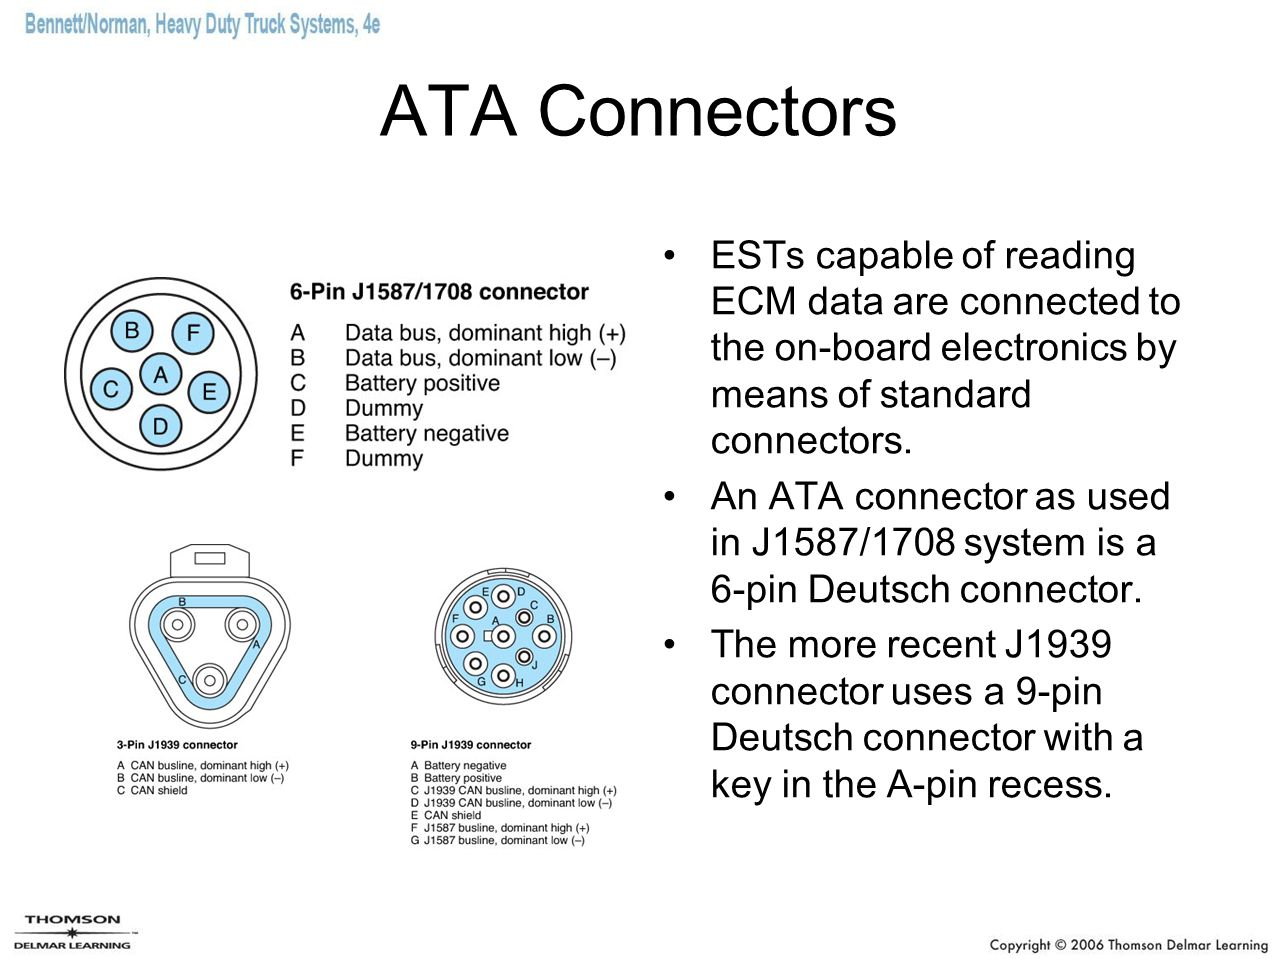 ATA Connectors ESTs capable of reading ECM data are connected to the on-board electronics by means of standard connectors.